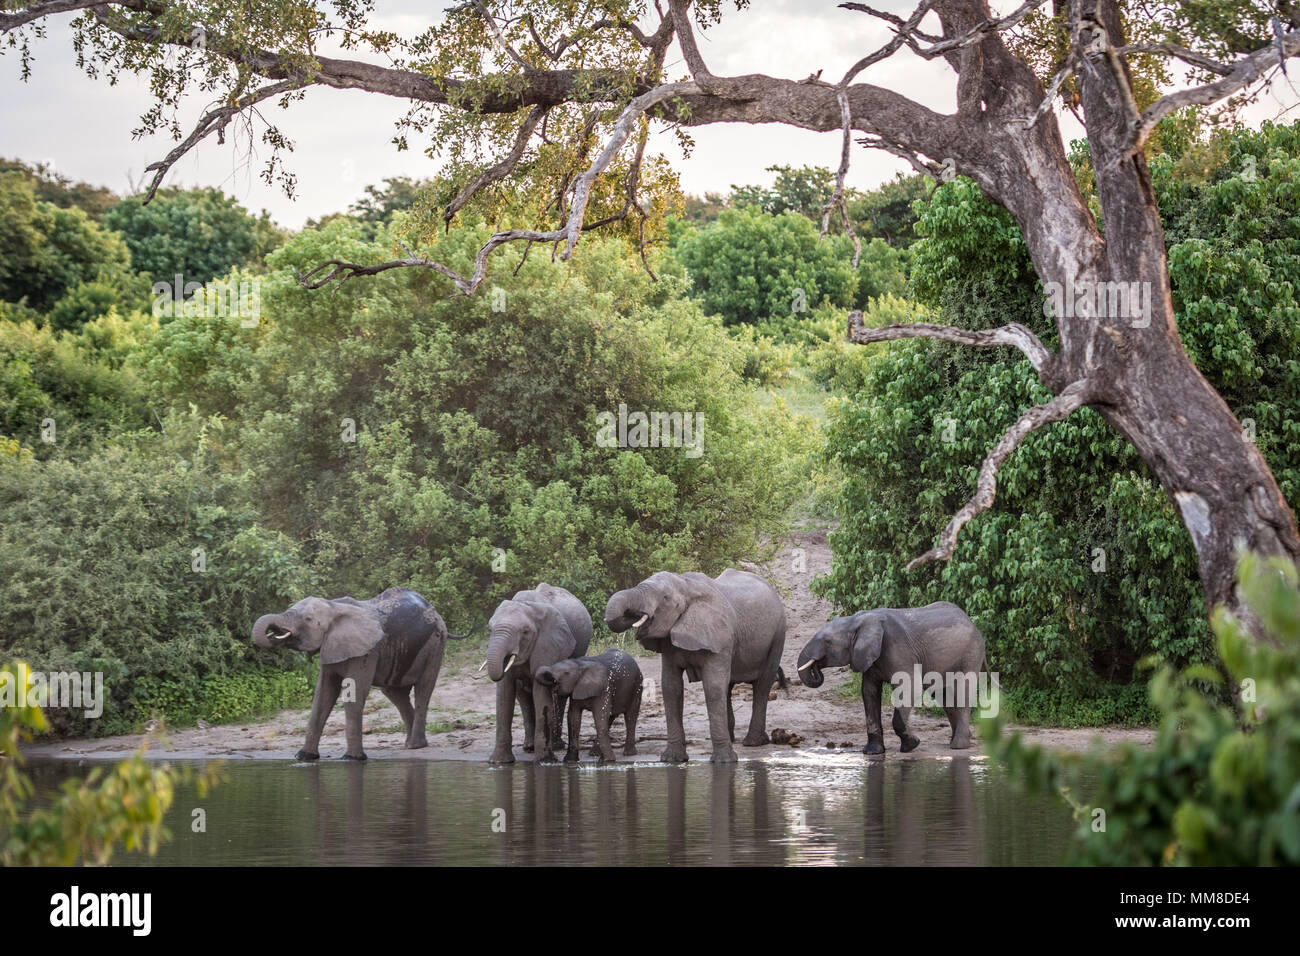 A family of African bush elephants (Loxodonta africana) use their long trunks to take a drink from the Chobe River. Chobe National Park - Botswana - Stock Image